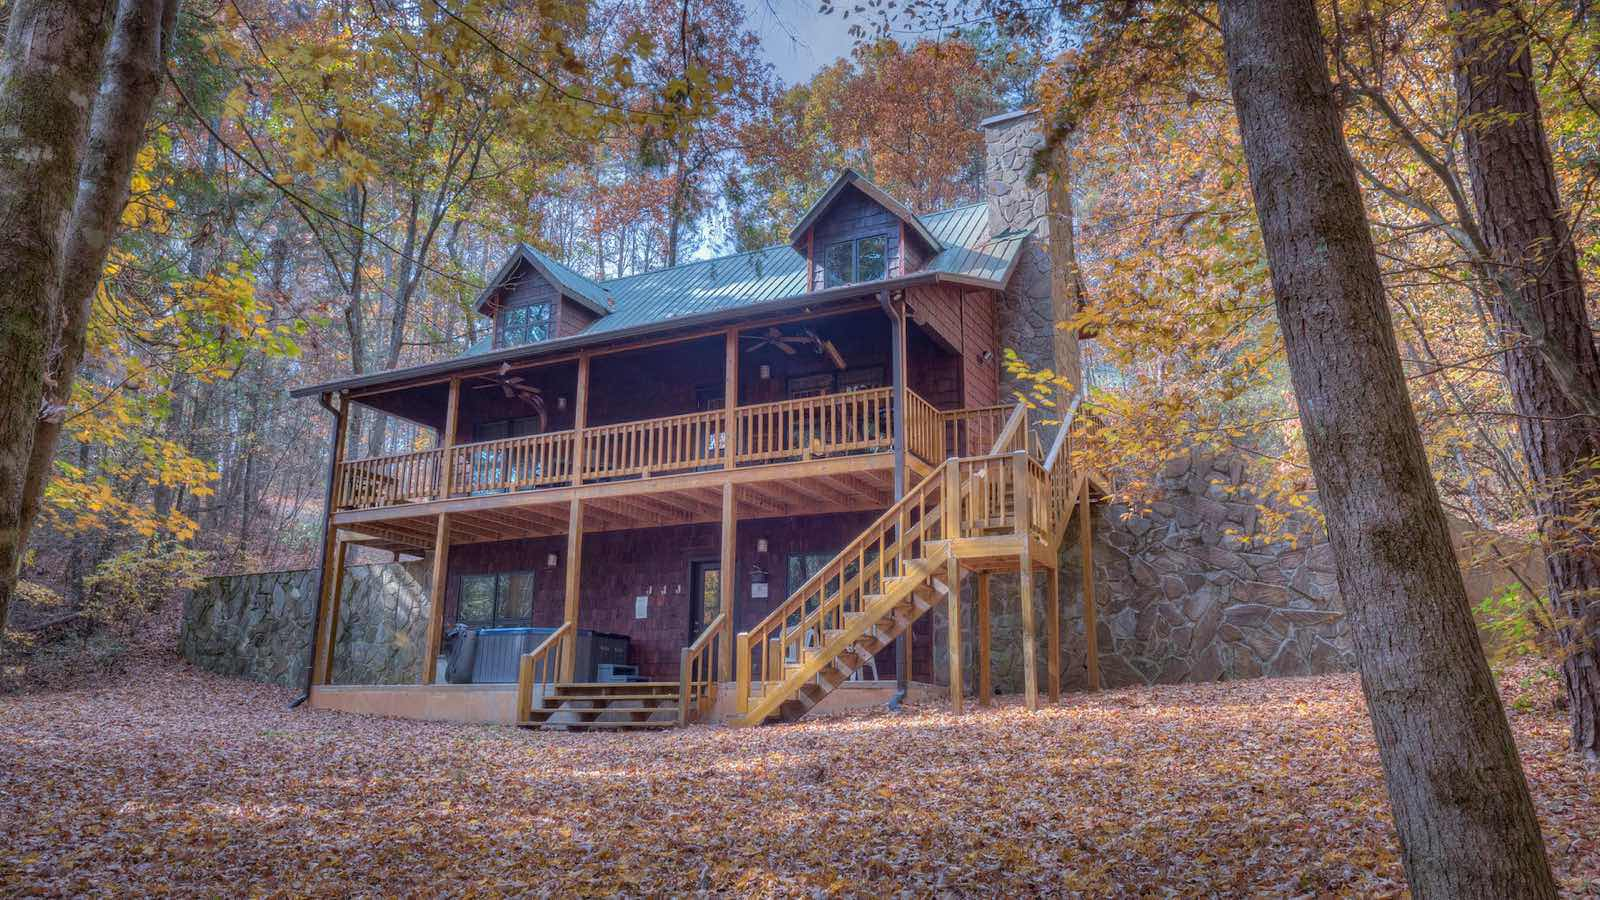 rental blue ridge georgia ga cabin of cabins pro lodge cabinrentals smaller timber rentals in